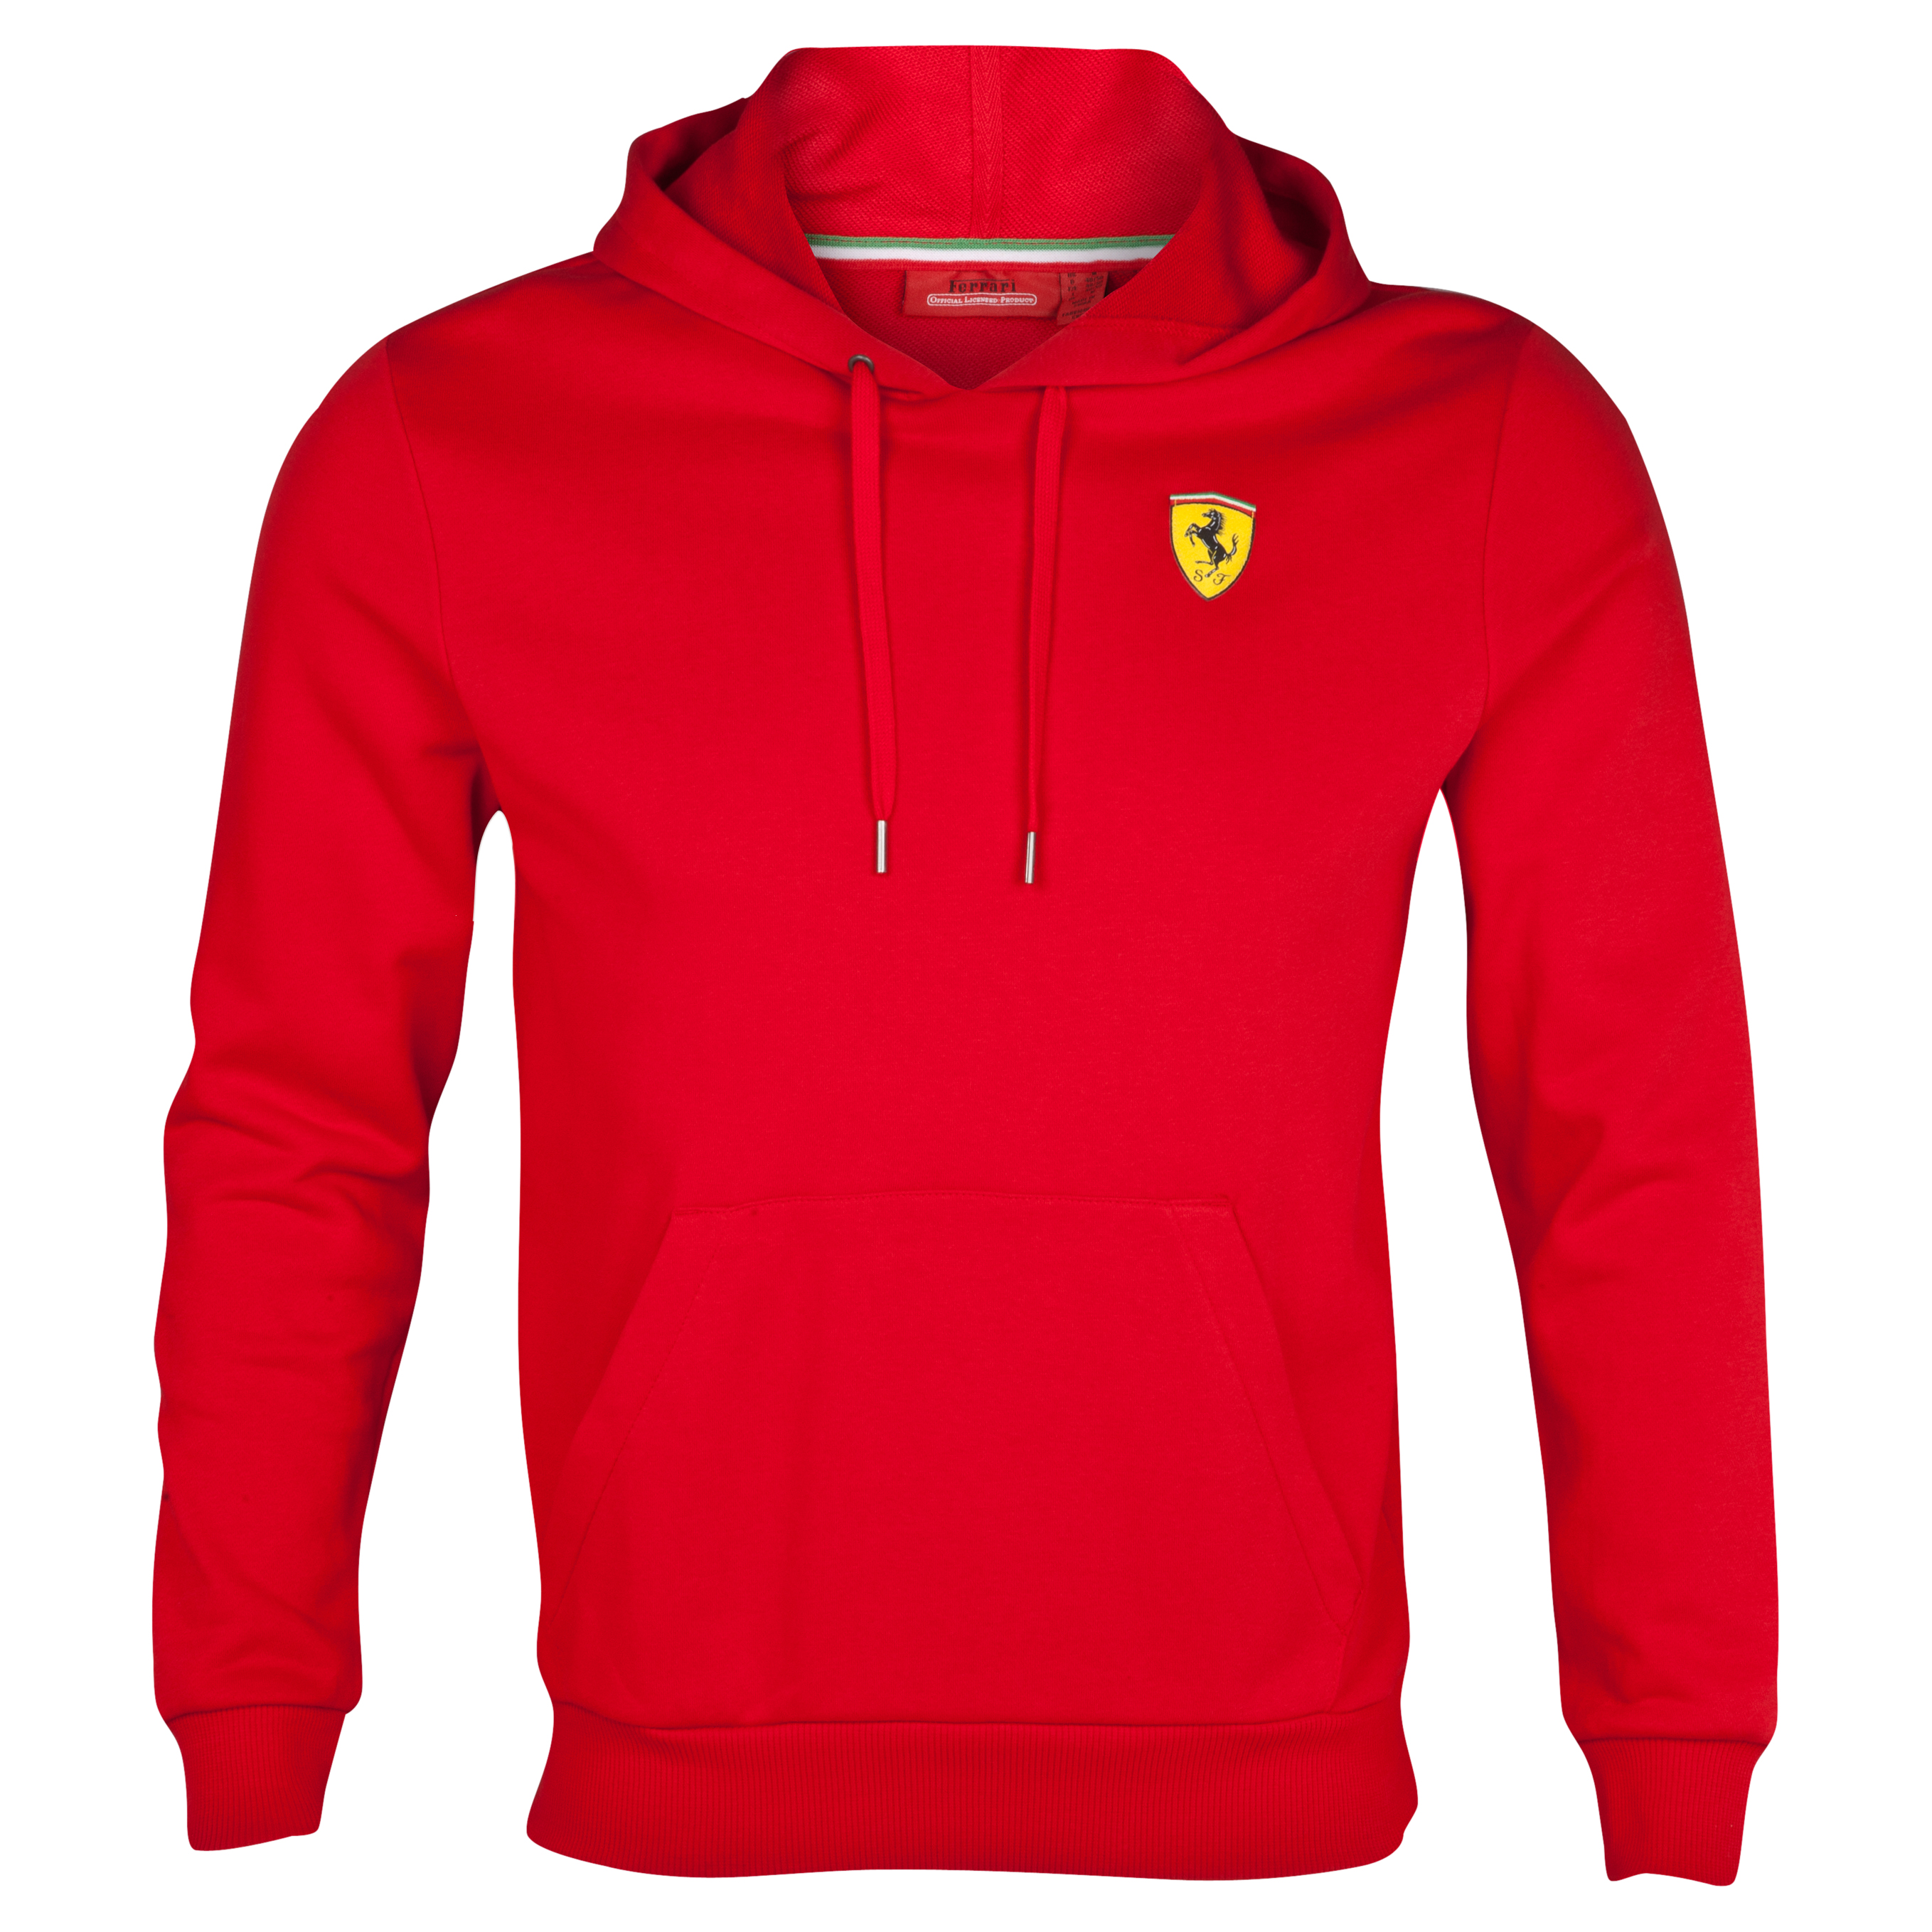 Scuderia Ferrari Hooded Sweatshirt - Red